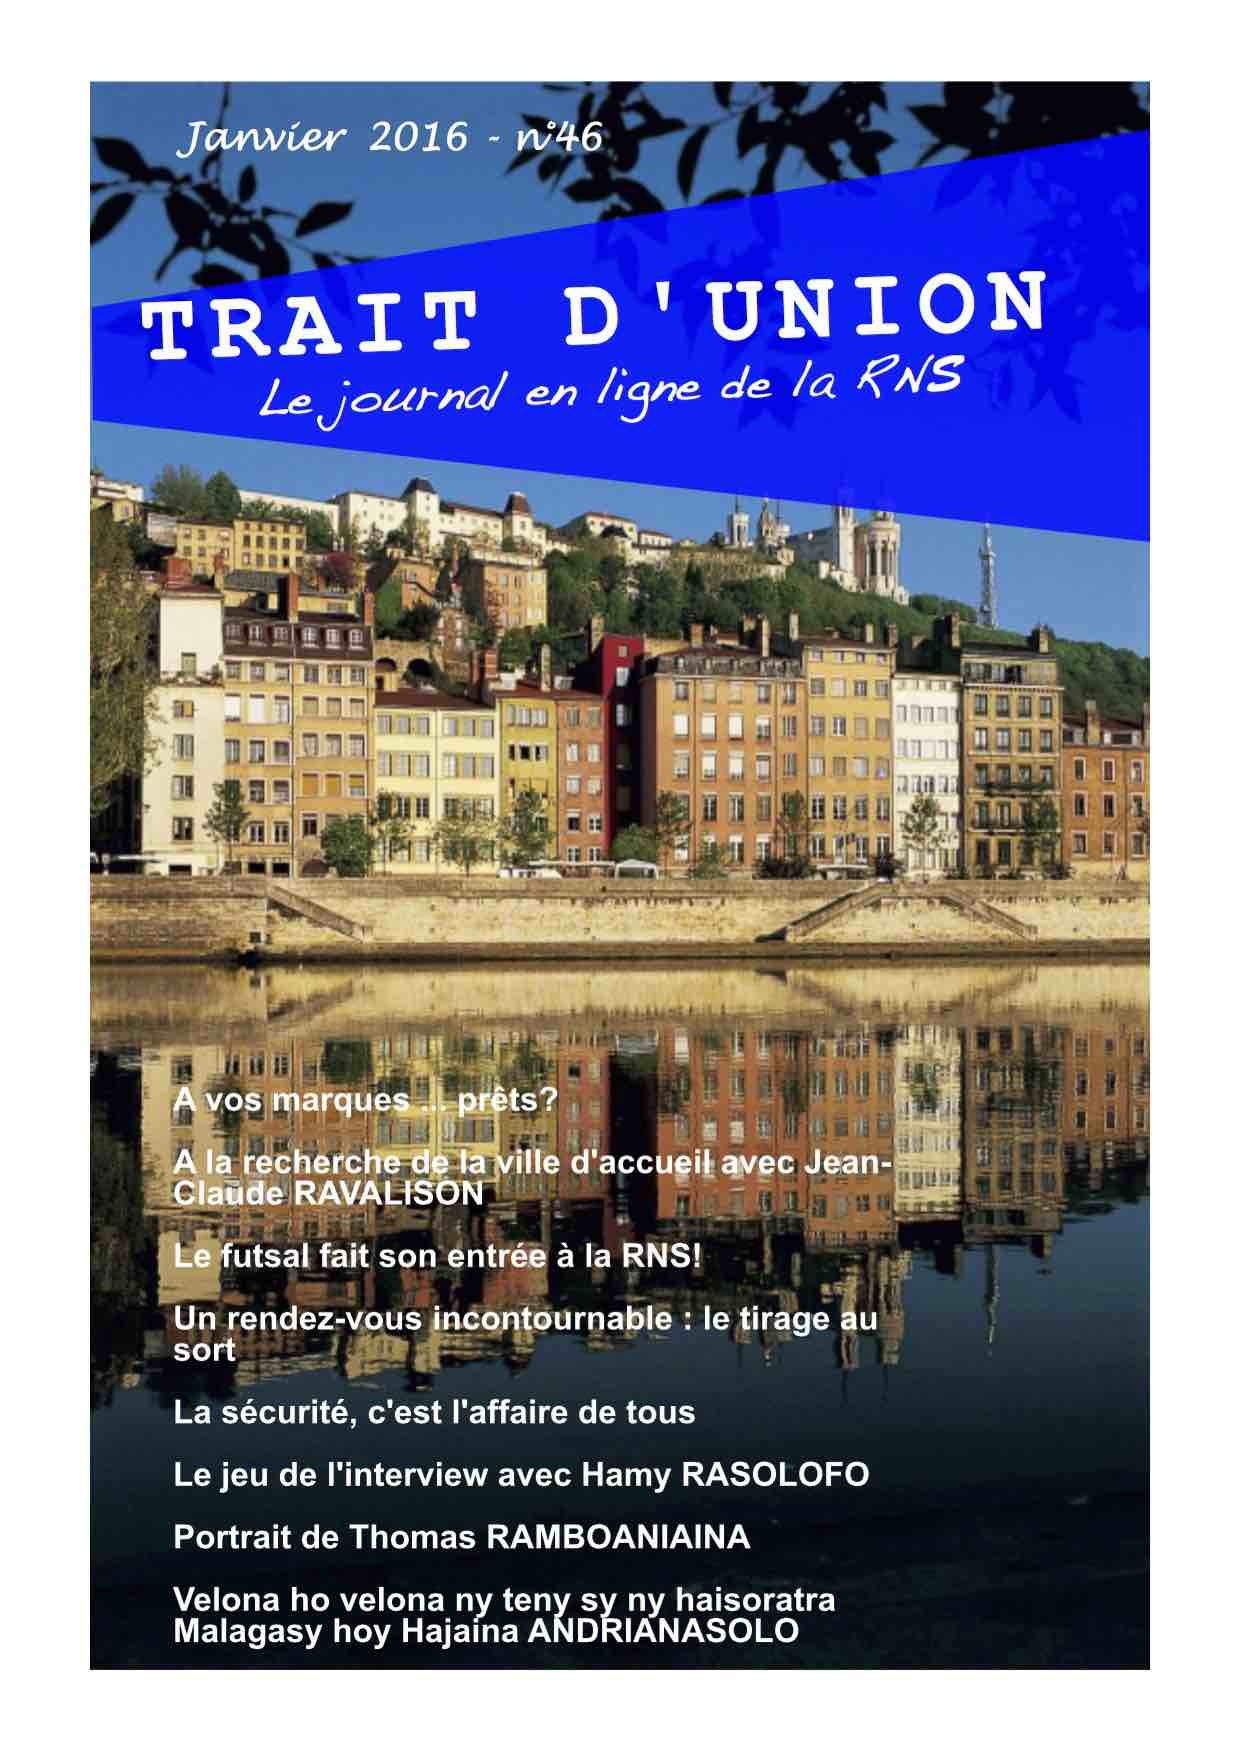 Agence de rencontre trait d'union